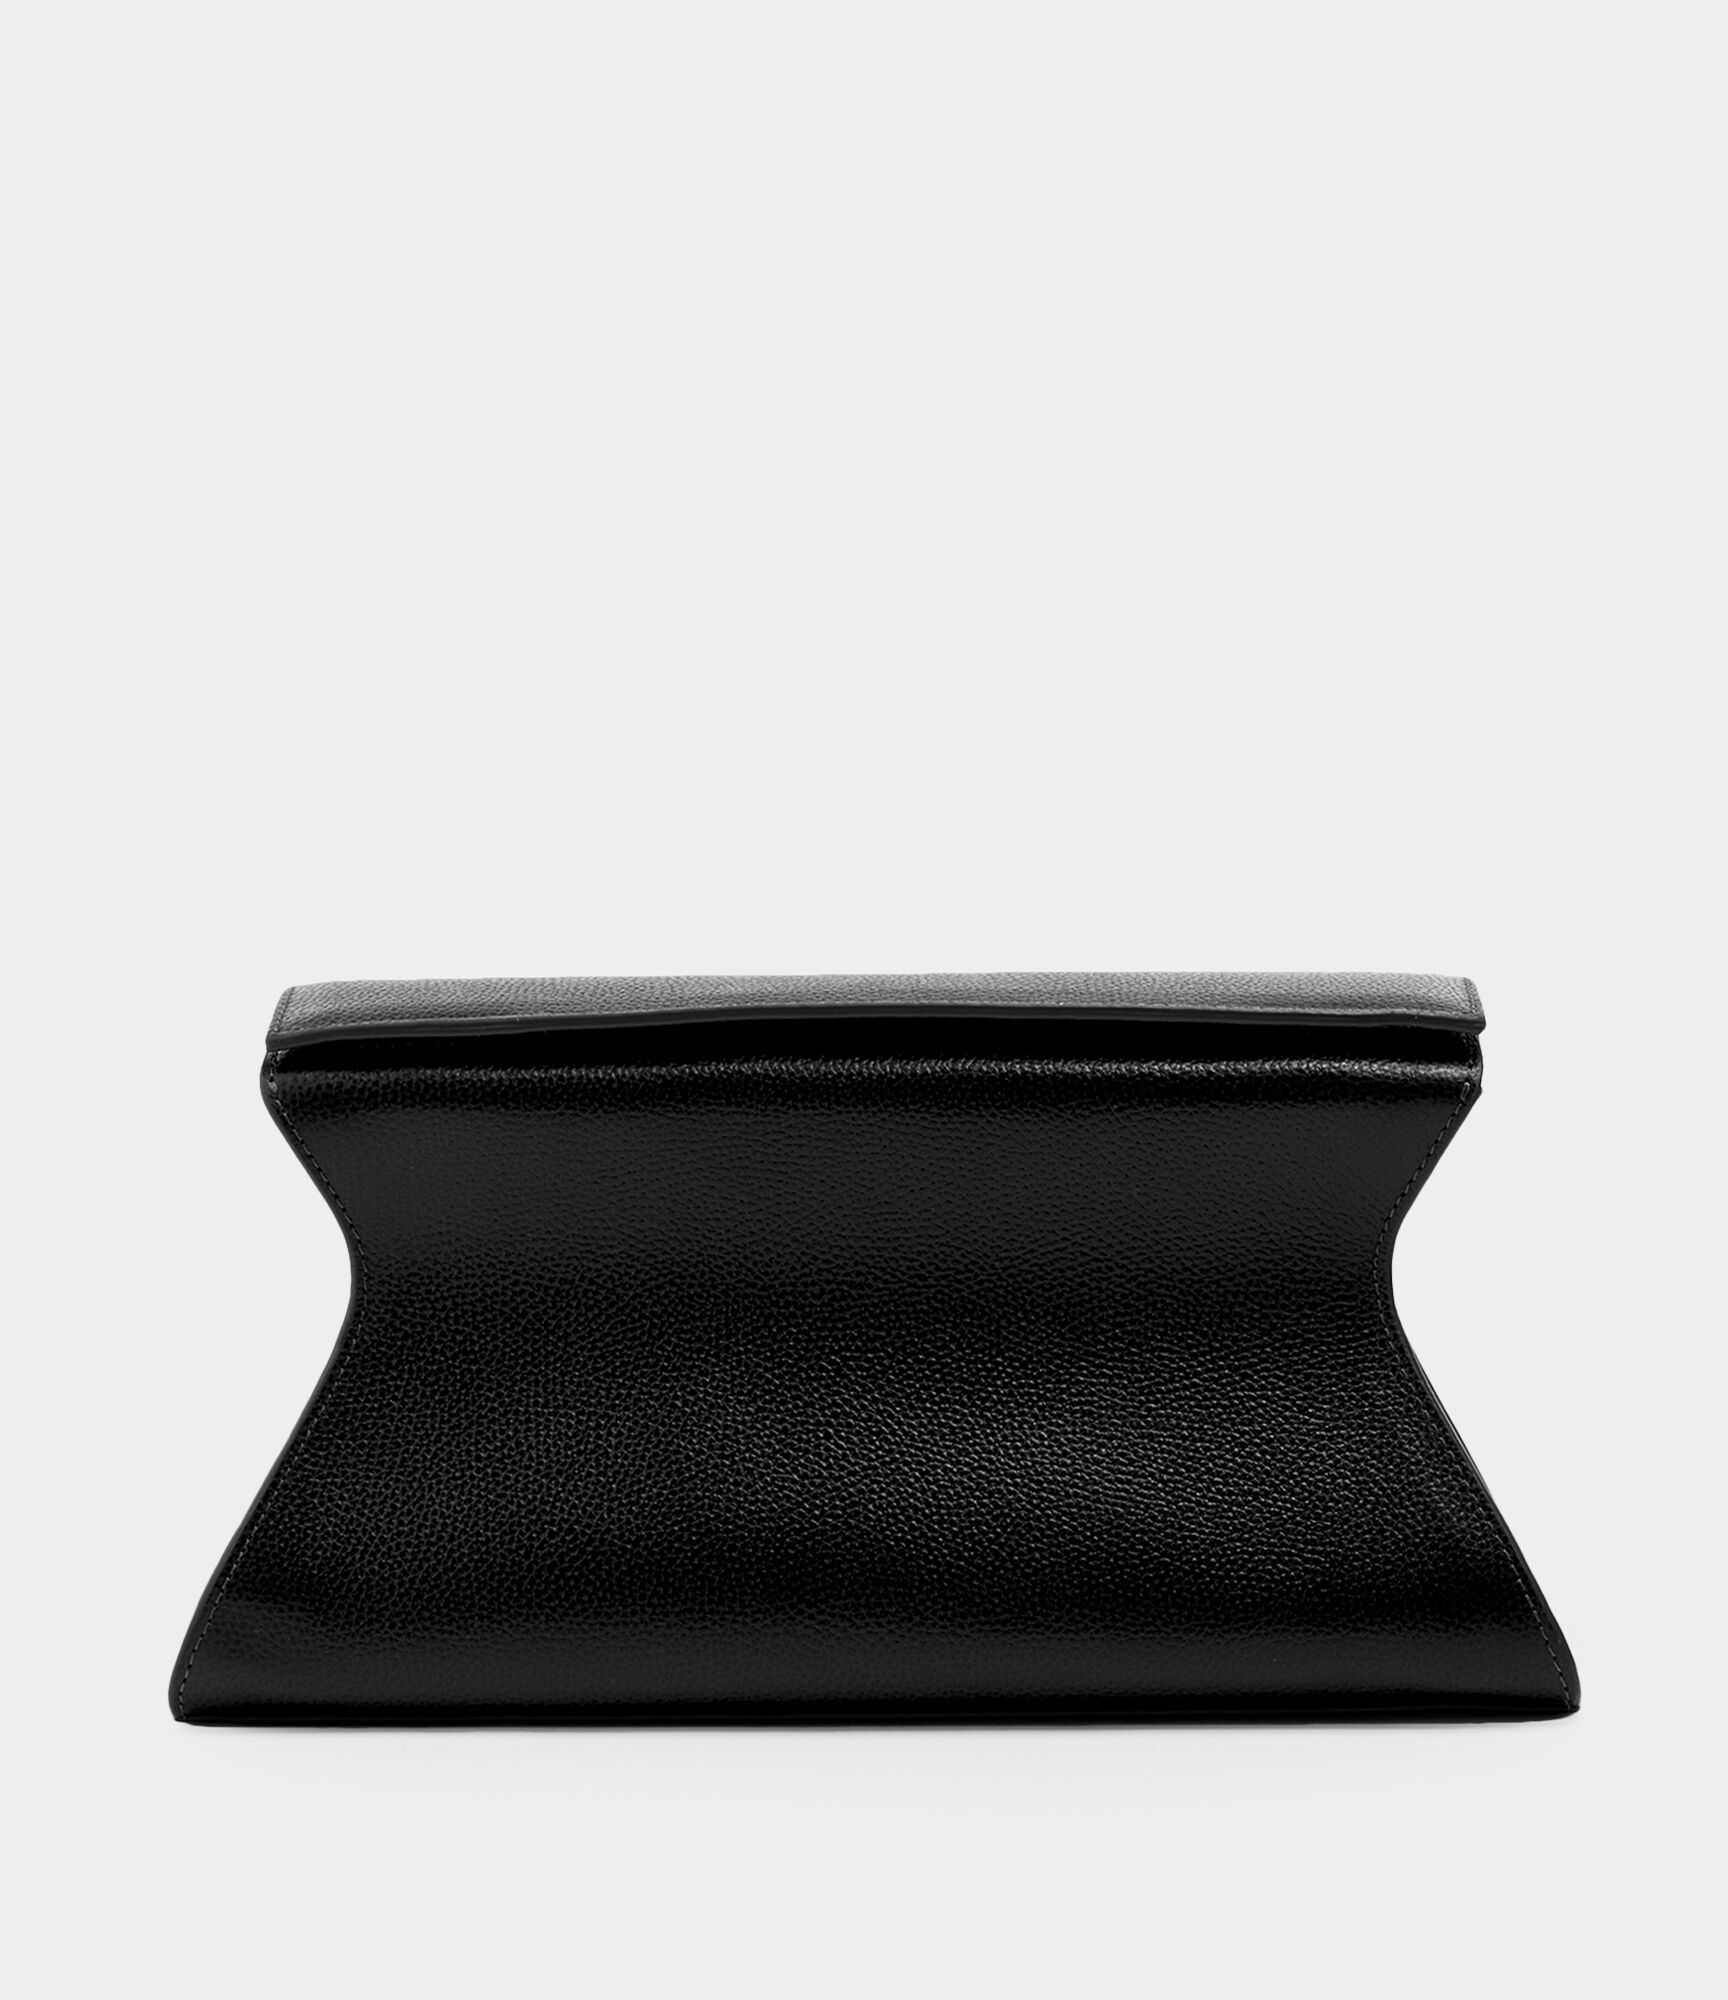 VIVIENNE WESTWOOD Kelly Clutch Bag Black